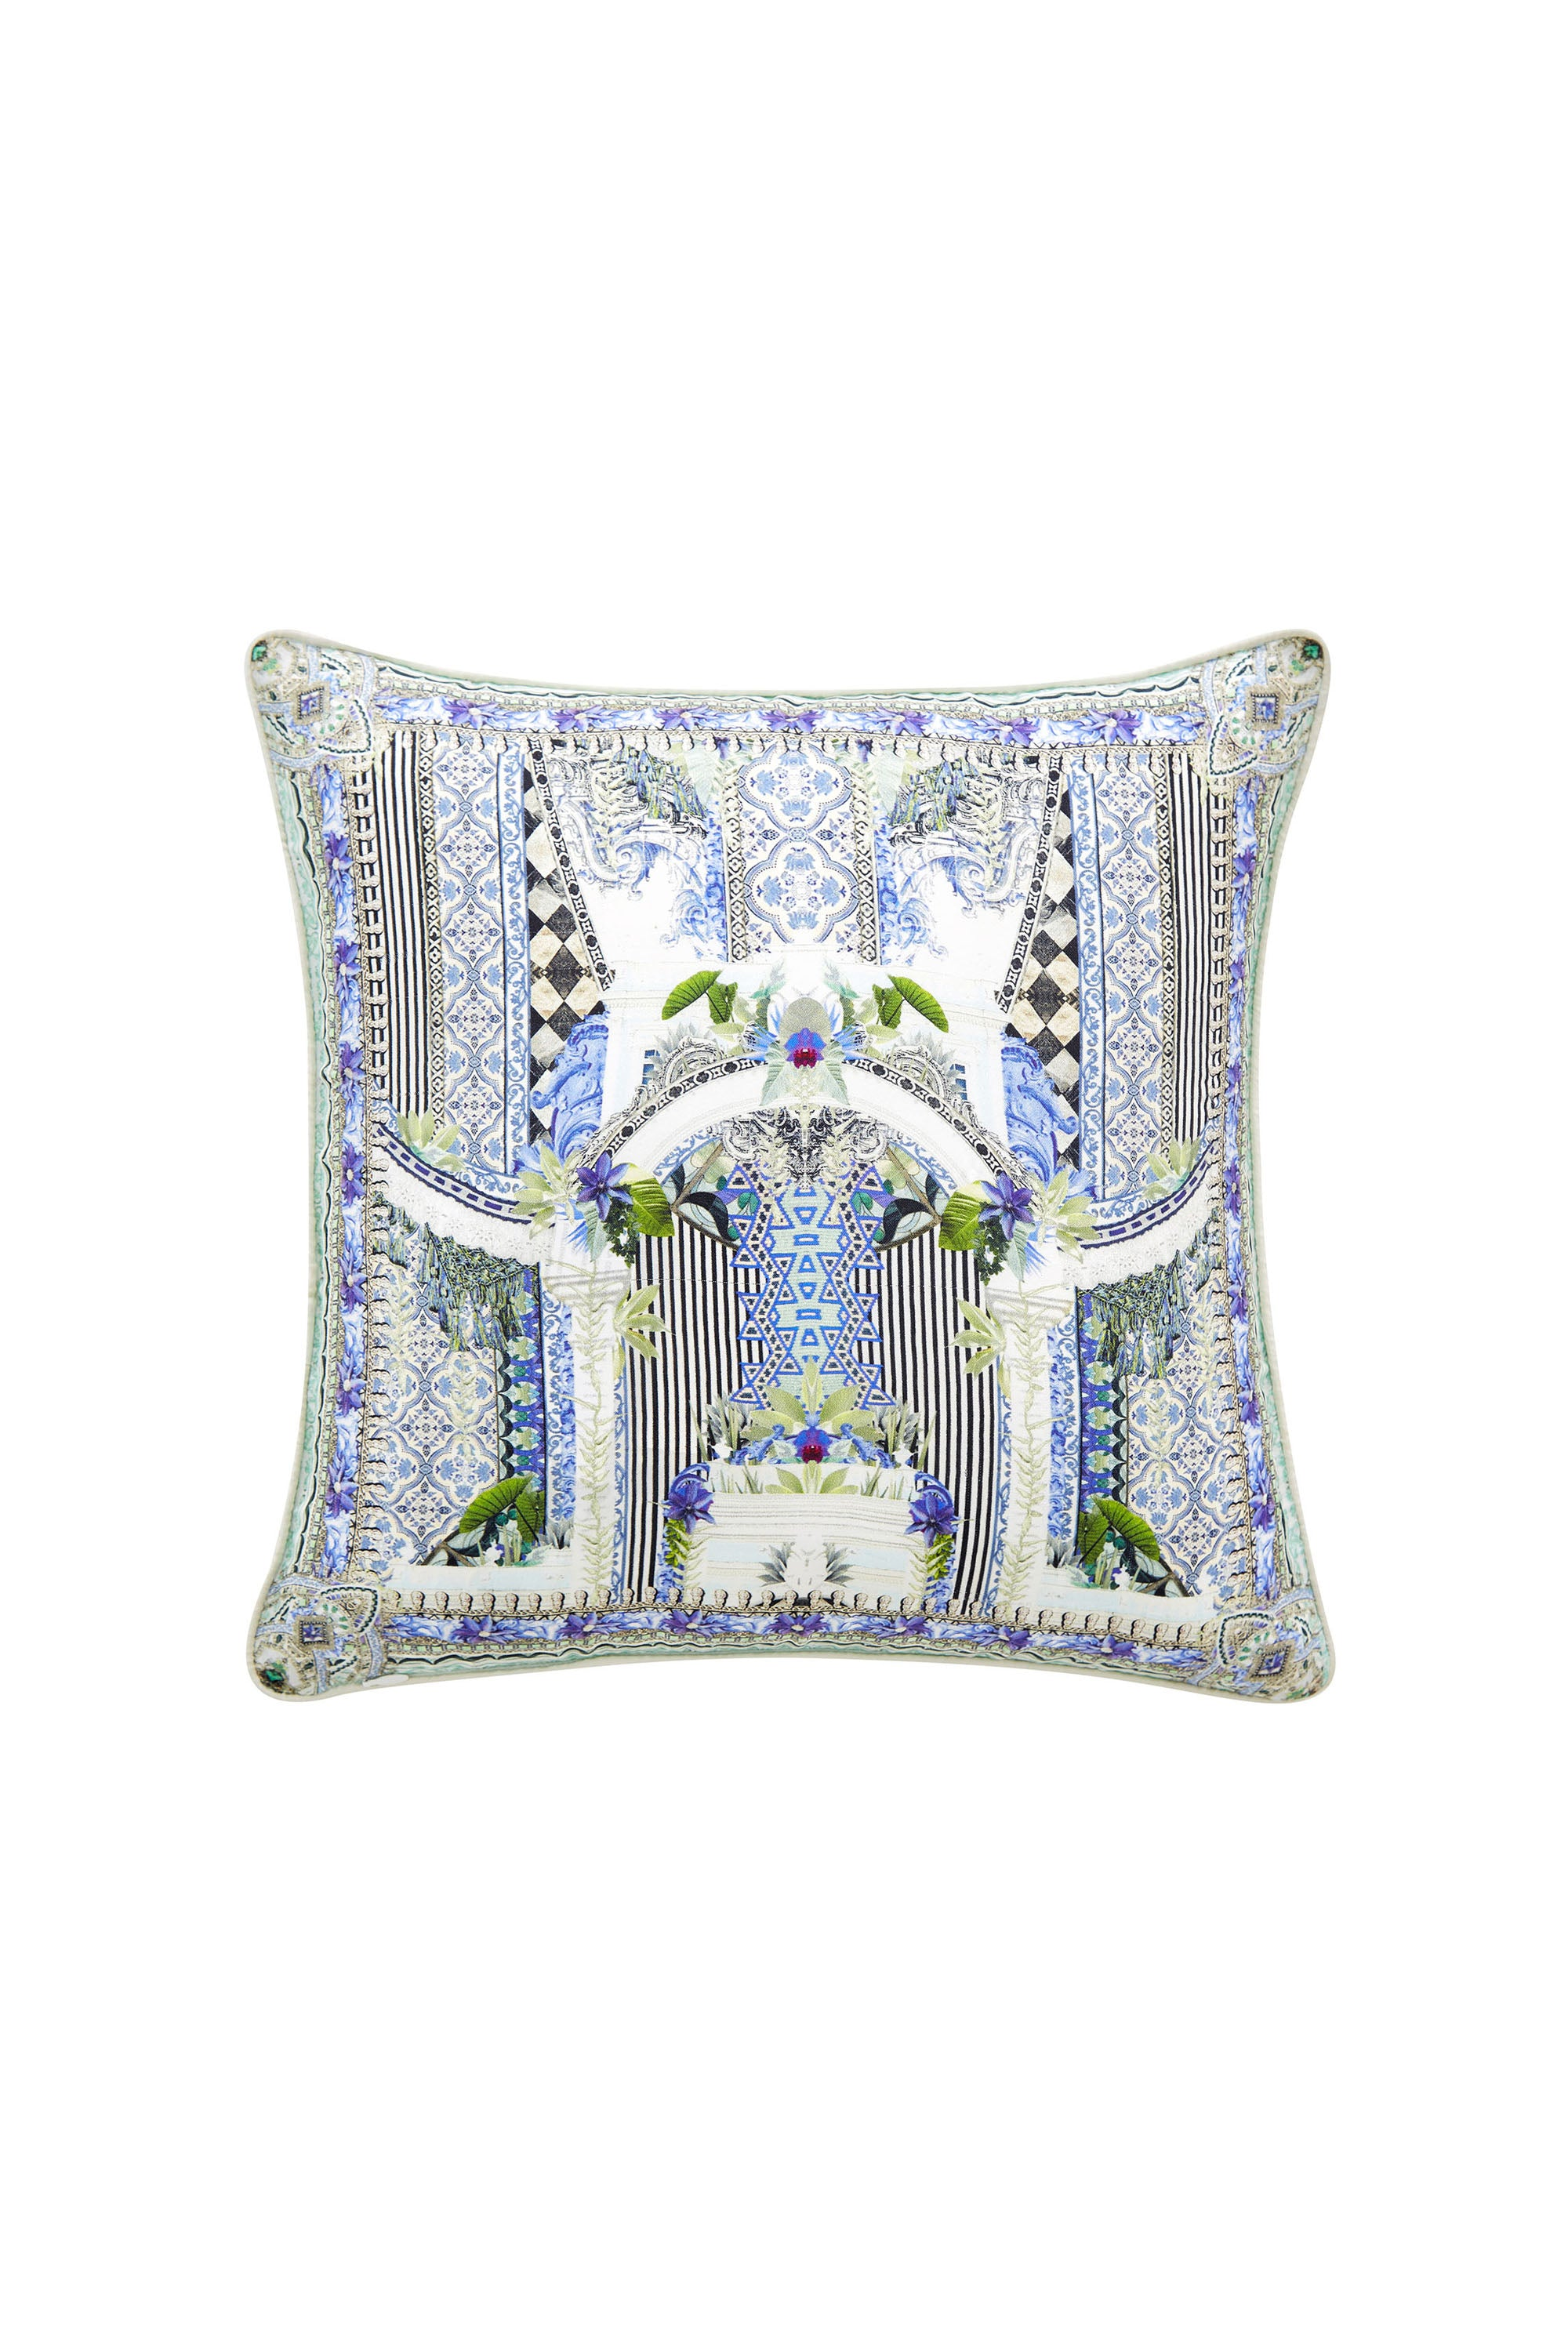 THE SWEET ESCAPE SMALL SQUARE CUSHION